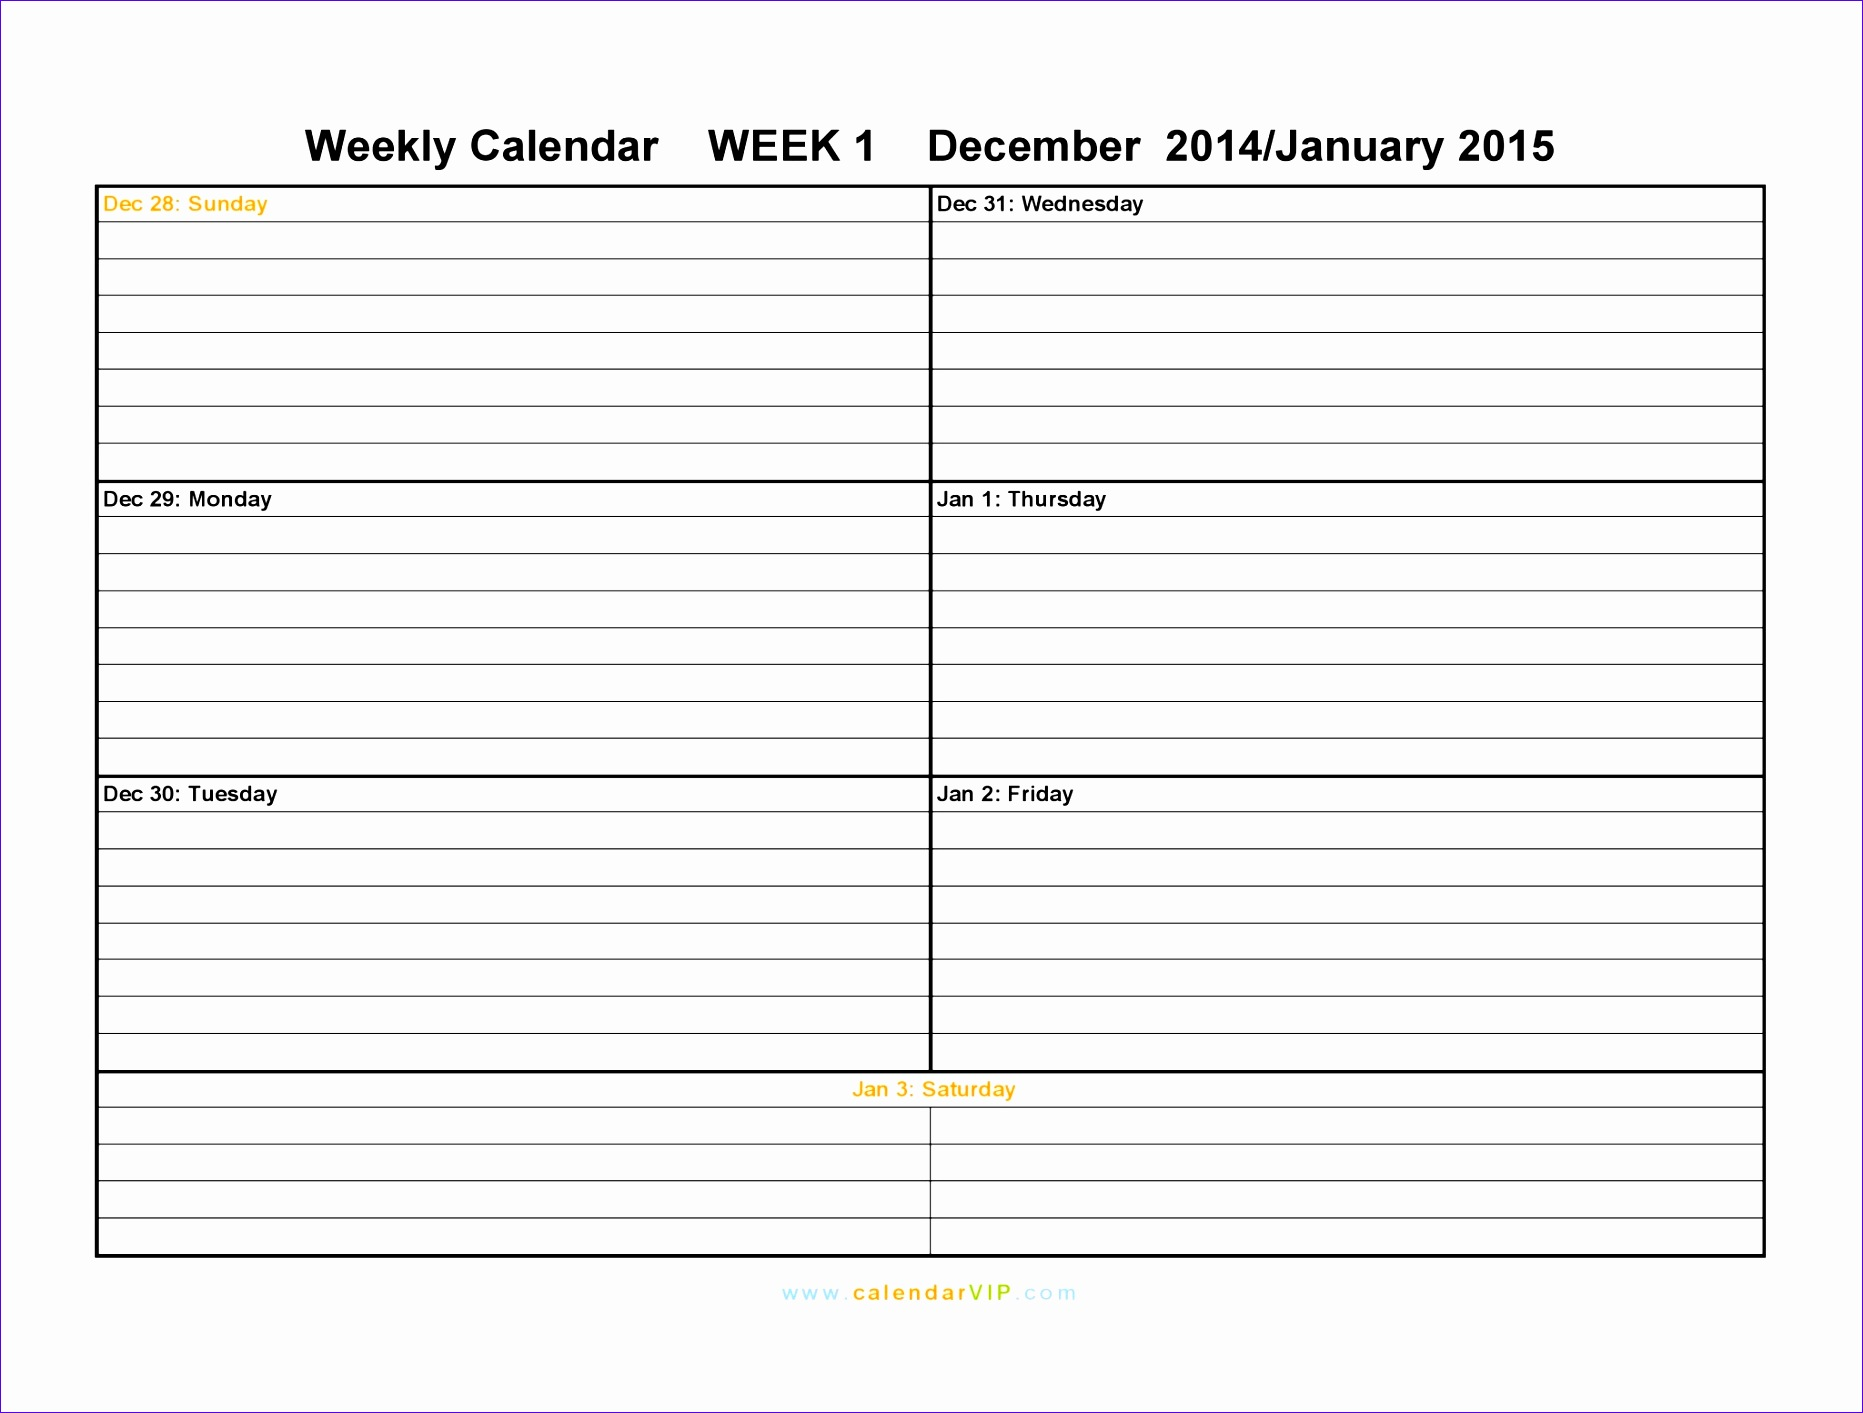 Week Planner Template Excel I2zoo Elegant Printable Weekly Schedule Sun Sat 20481536